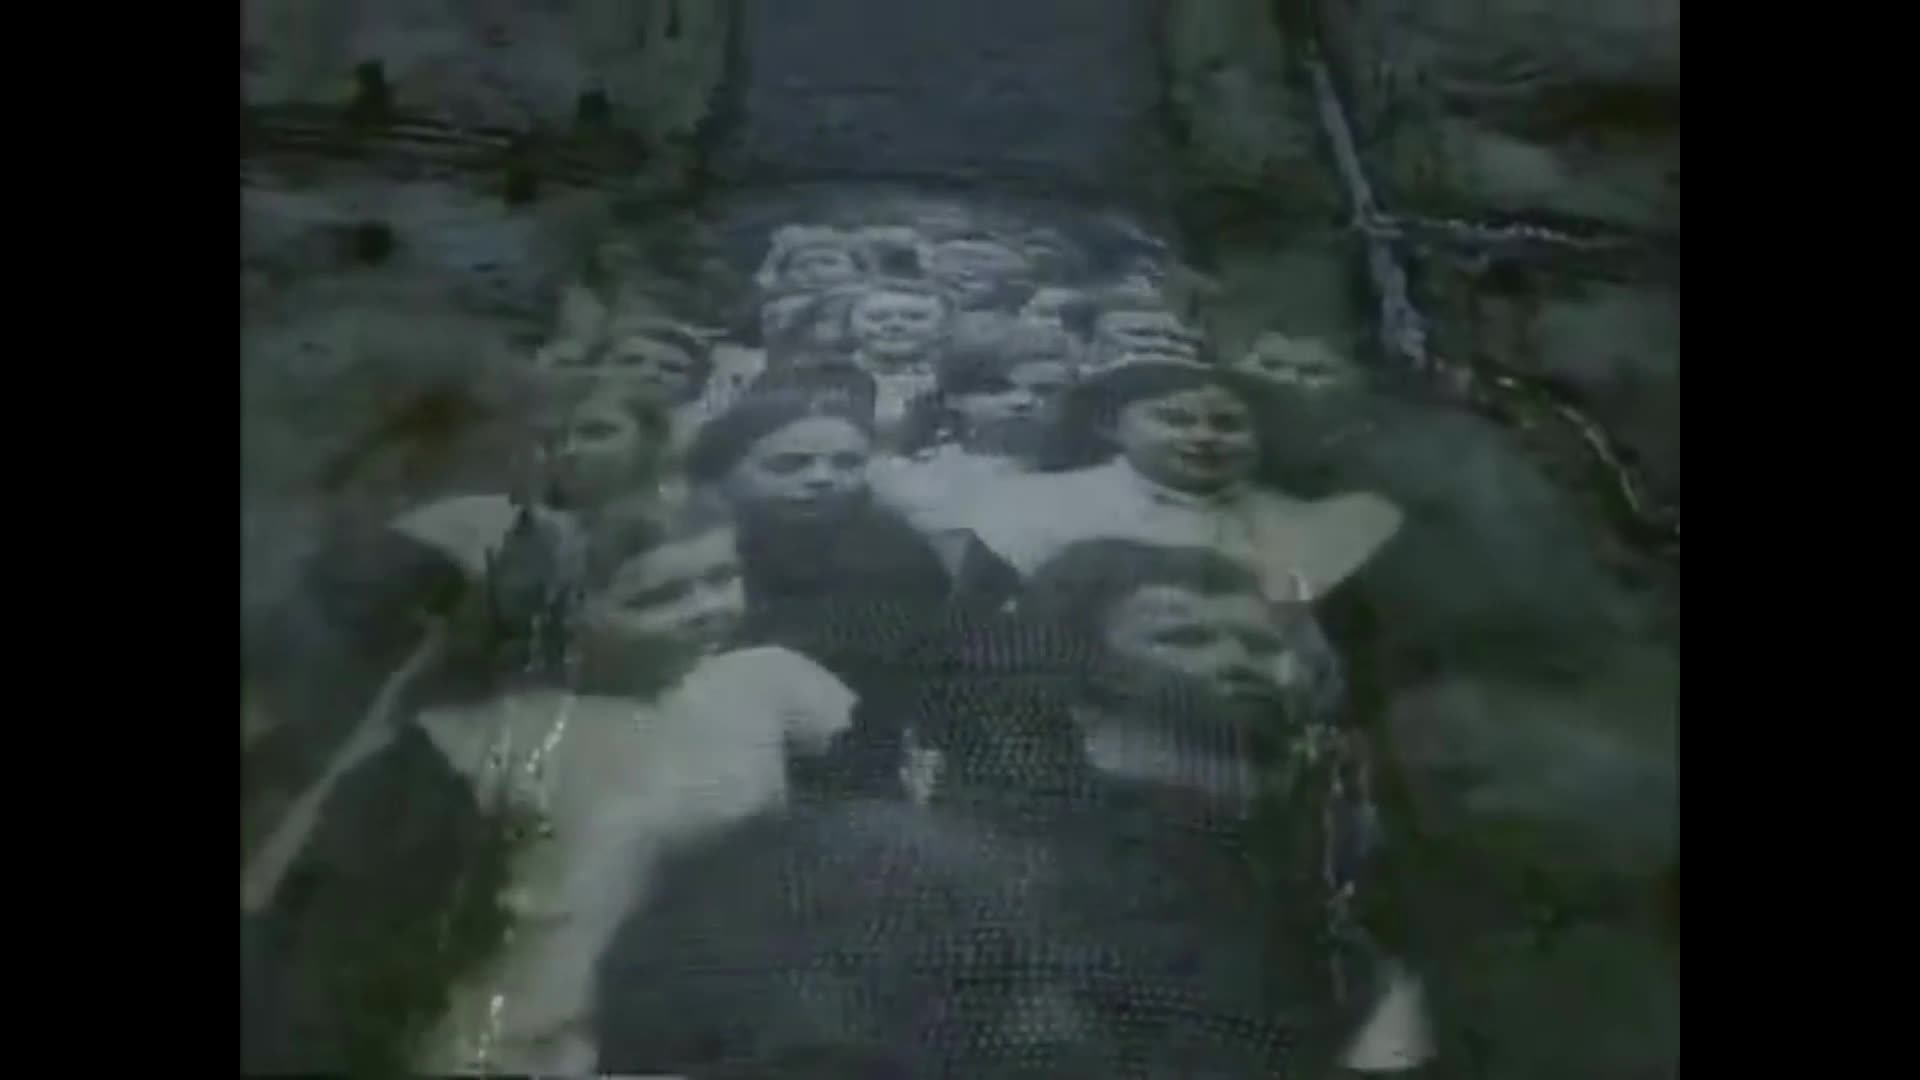 People's Century (1995) Episode 9 - '1933, Master Race'